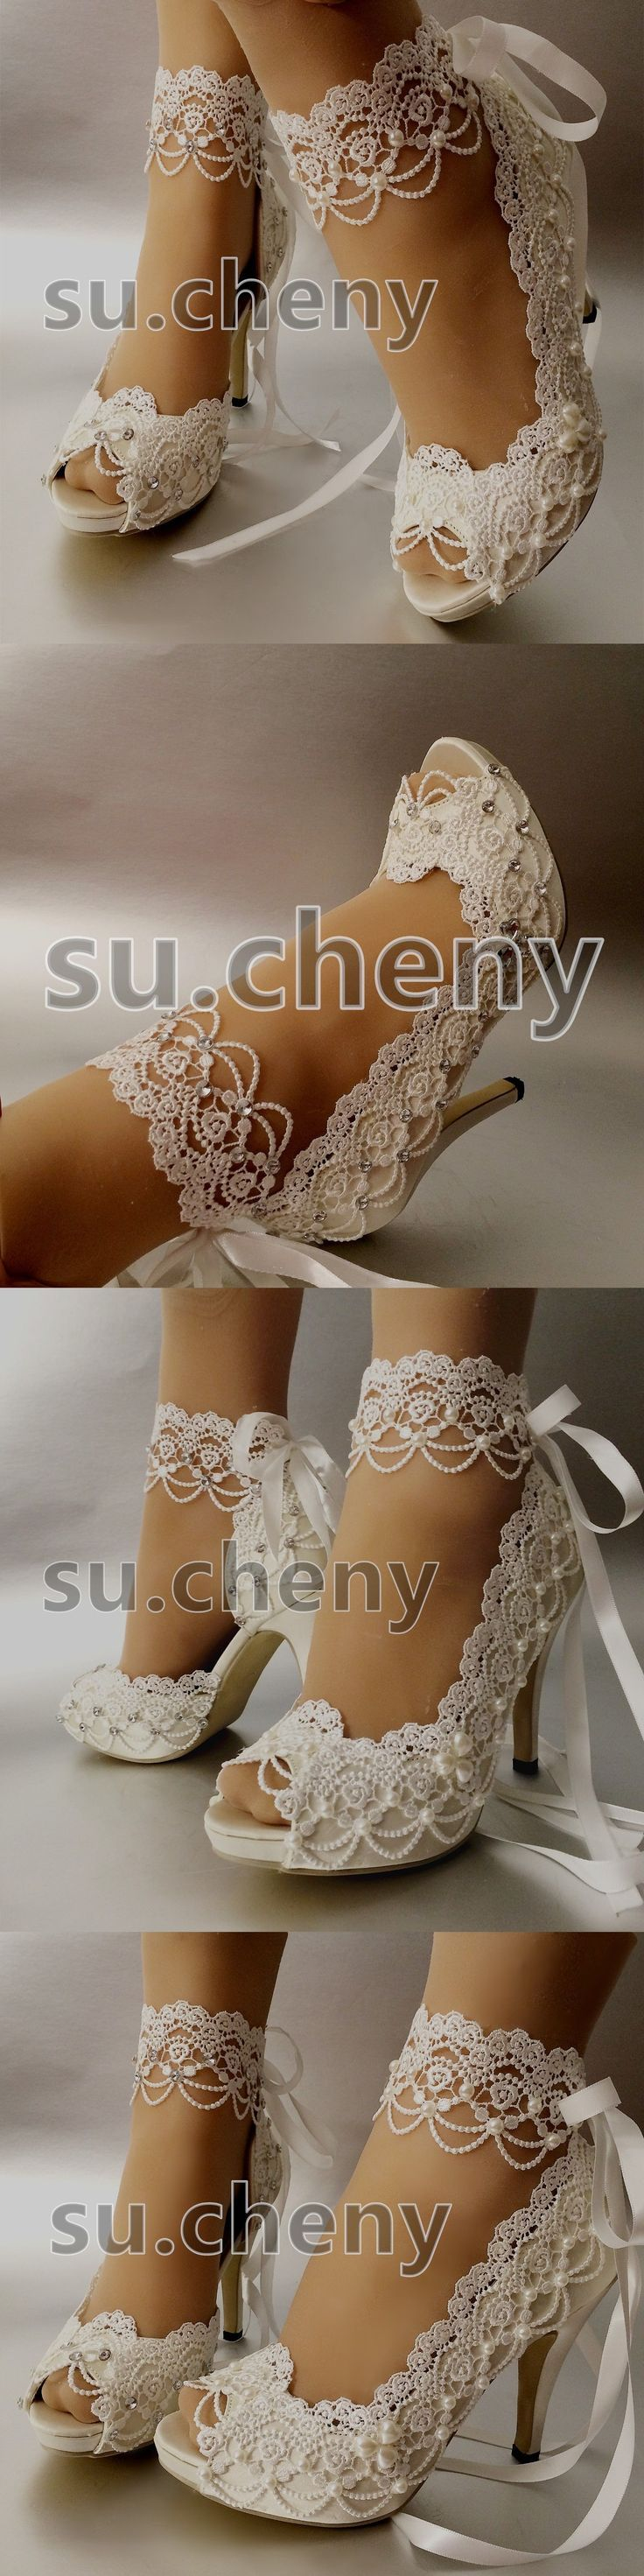 """Wedding Shoes And Bridal Shoes: 3 4"""" Heel White Ivory Satin Lace Ribbon Open Toe Wedding Shoes Bride Size 5-9.5 BUY IT NOW ONLY: $59.99"""